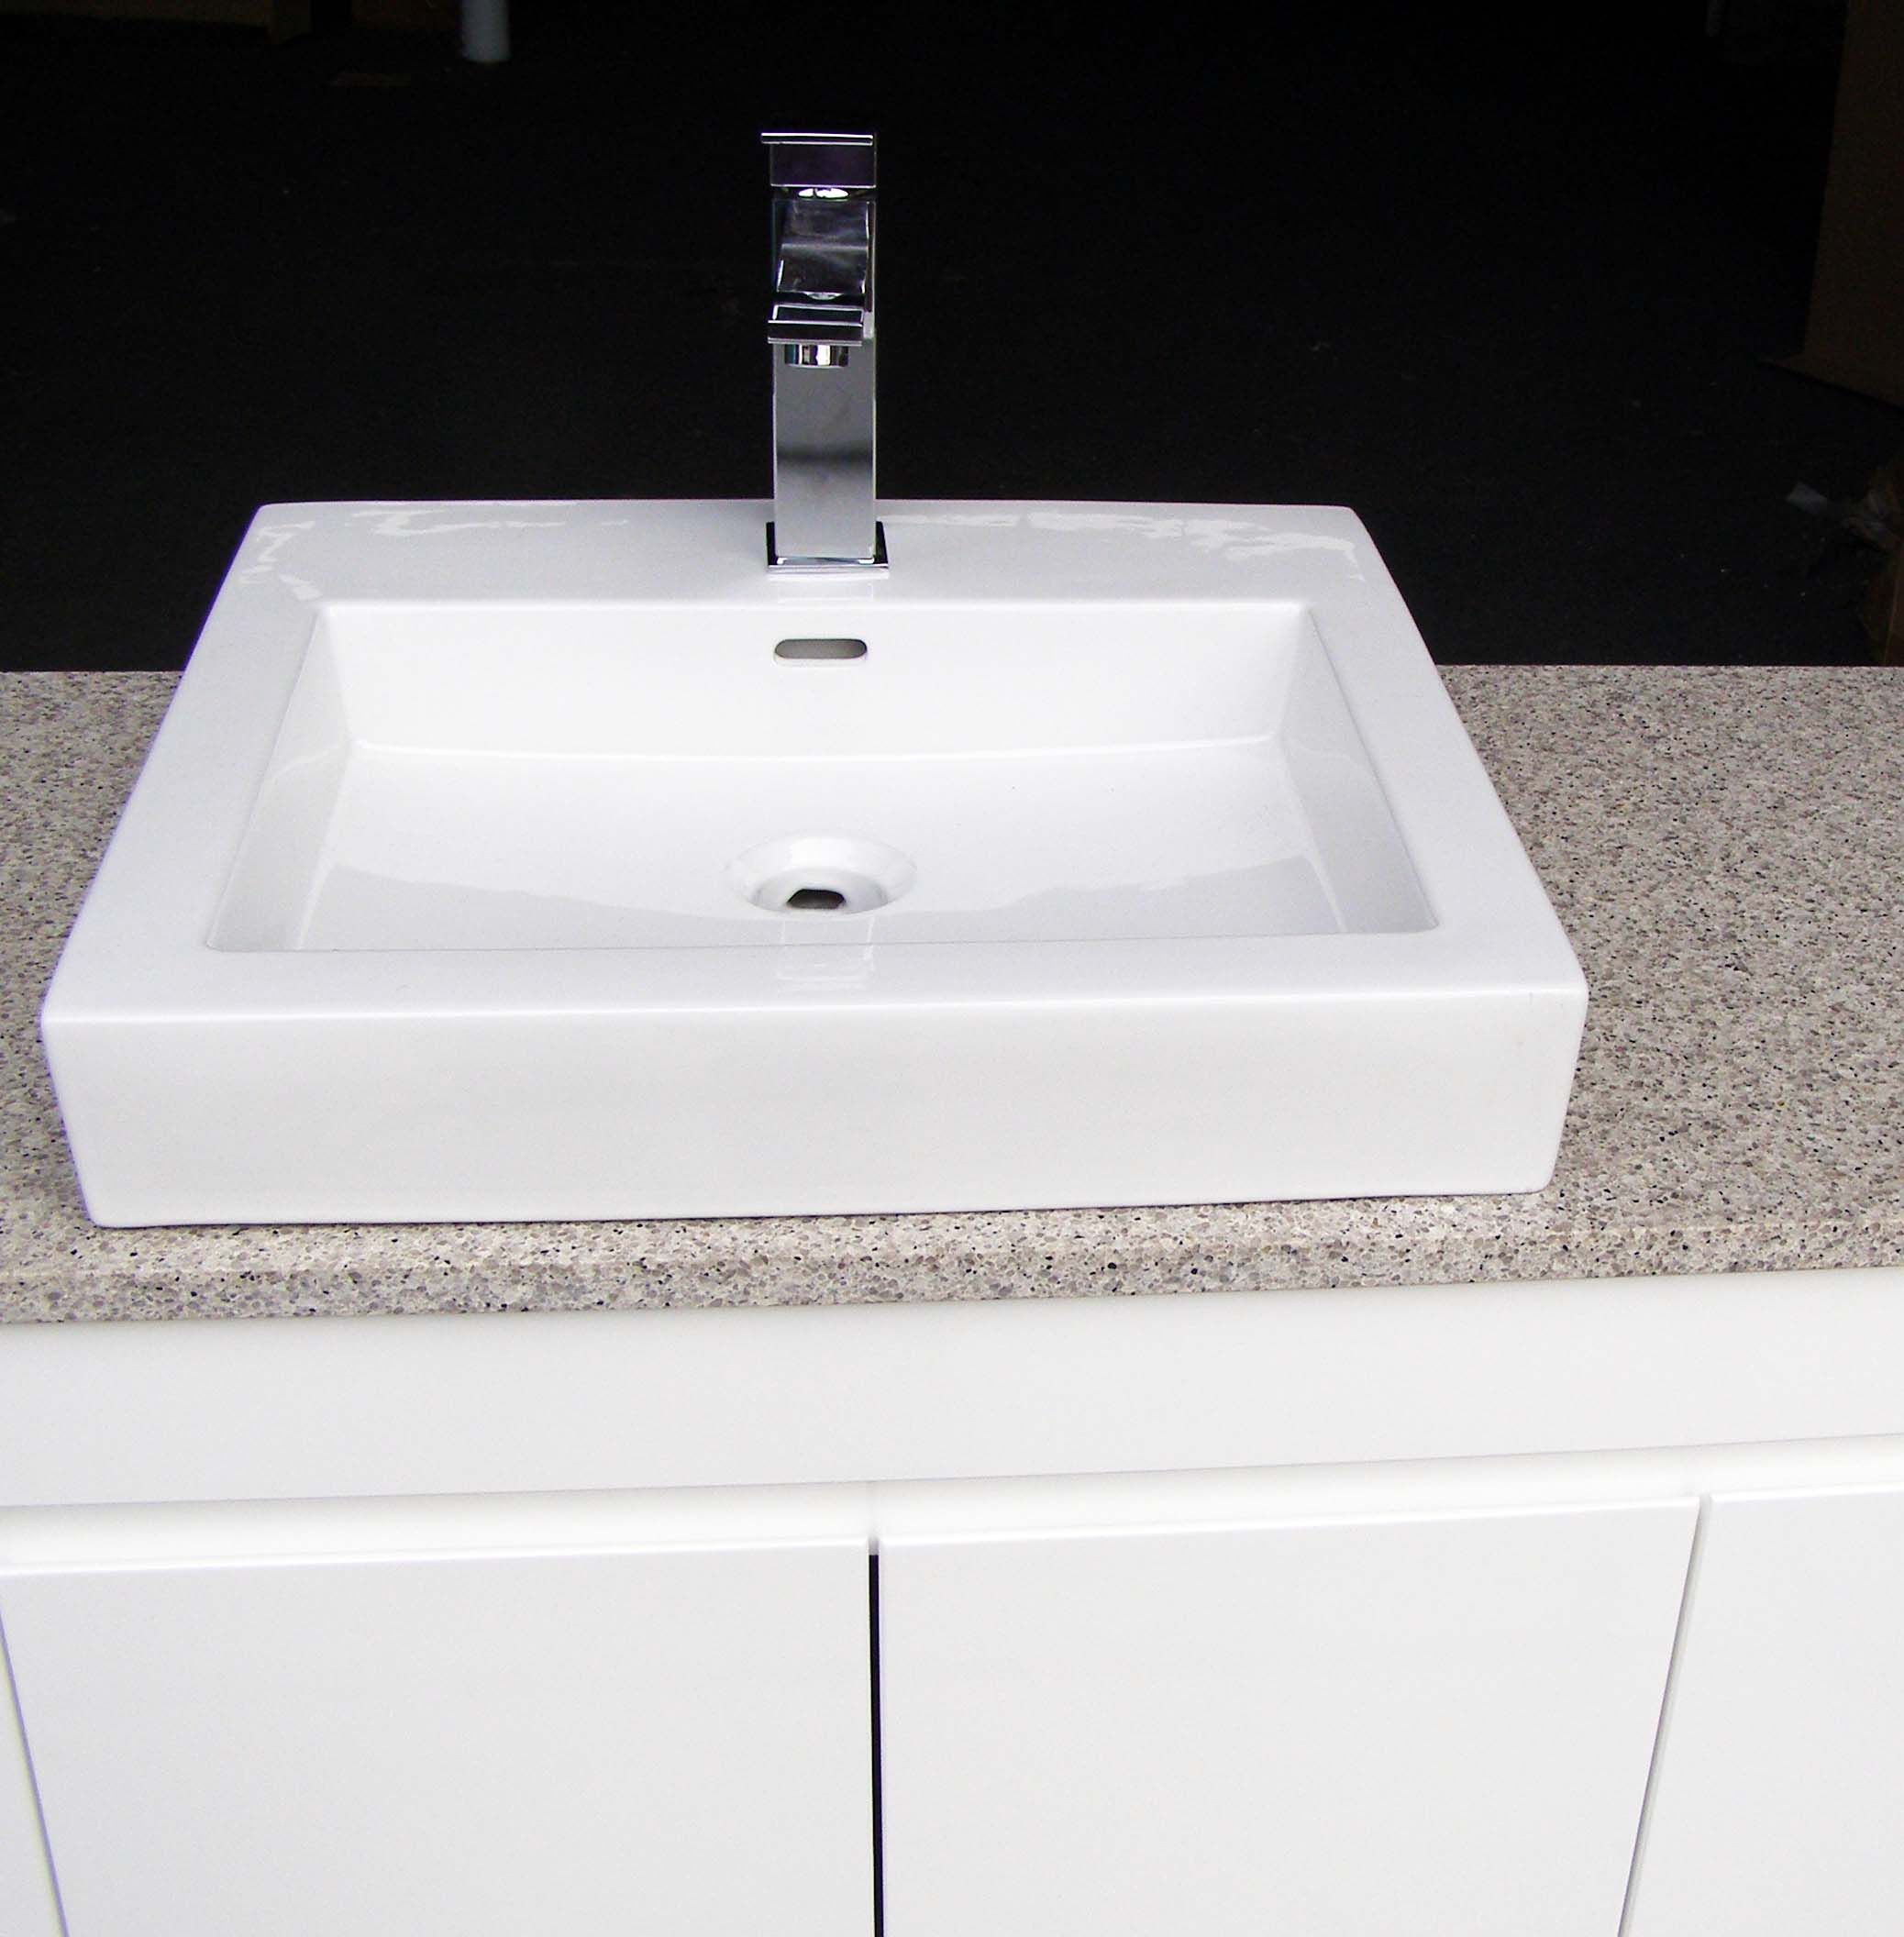 Bathroom vanity basin - Euro Fwpl1200sab 1200mm Gloss Bathroom Vanity Stone Top And Single Square Above Counter Ceramic Basin